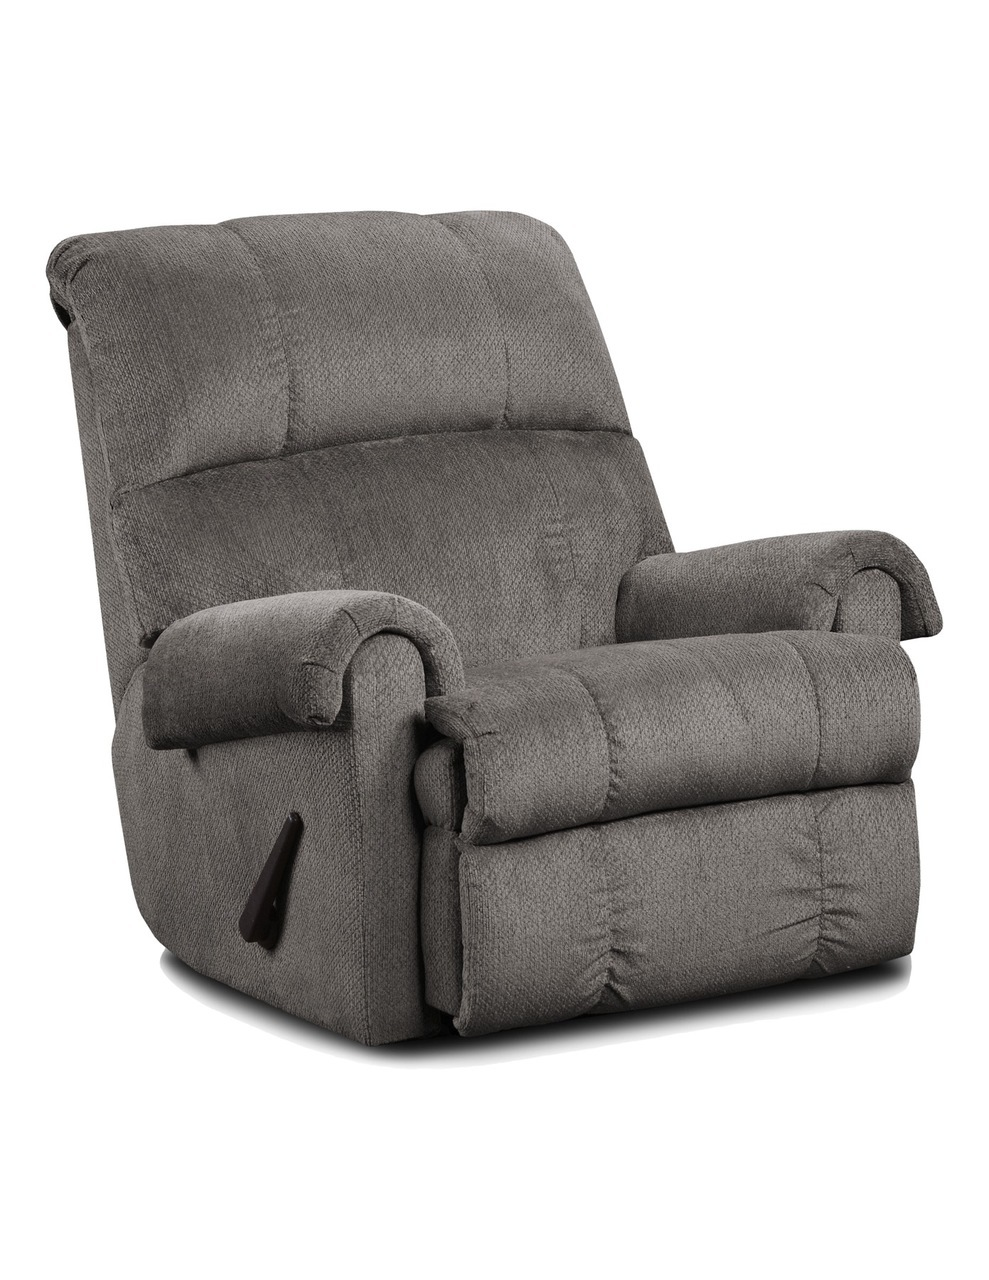 8700 Kelly Recliner Chair -Kelly Gray $259